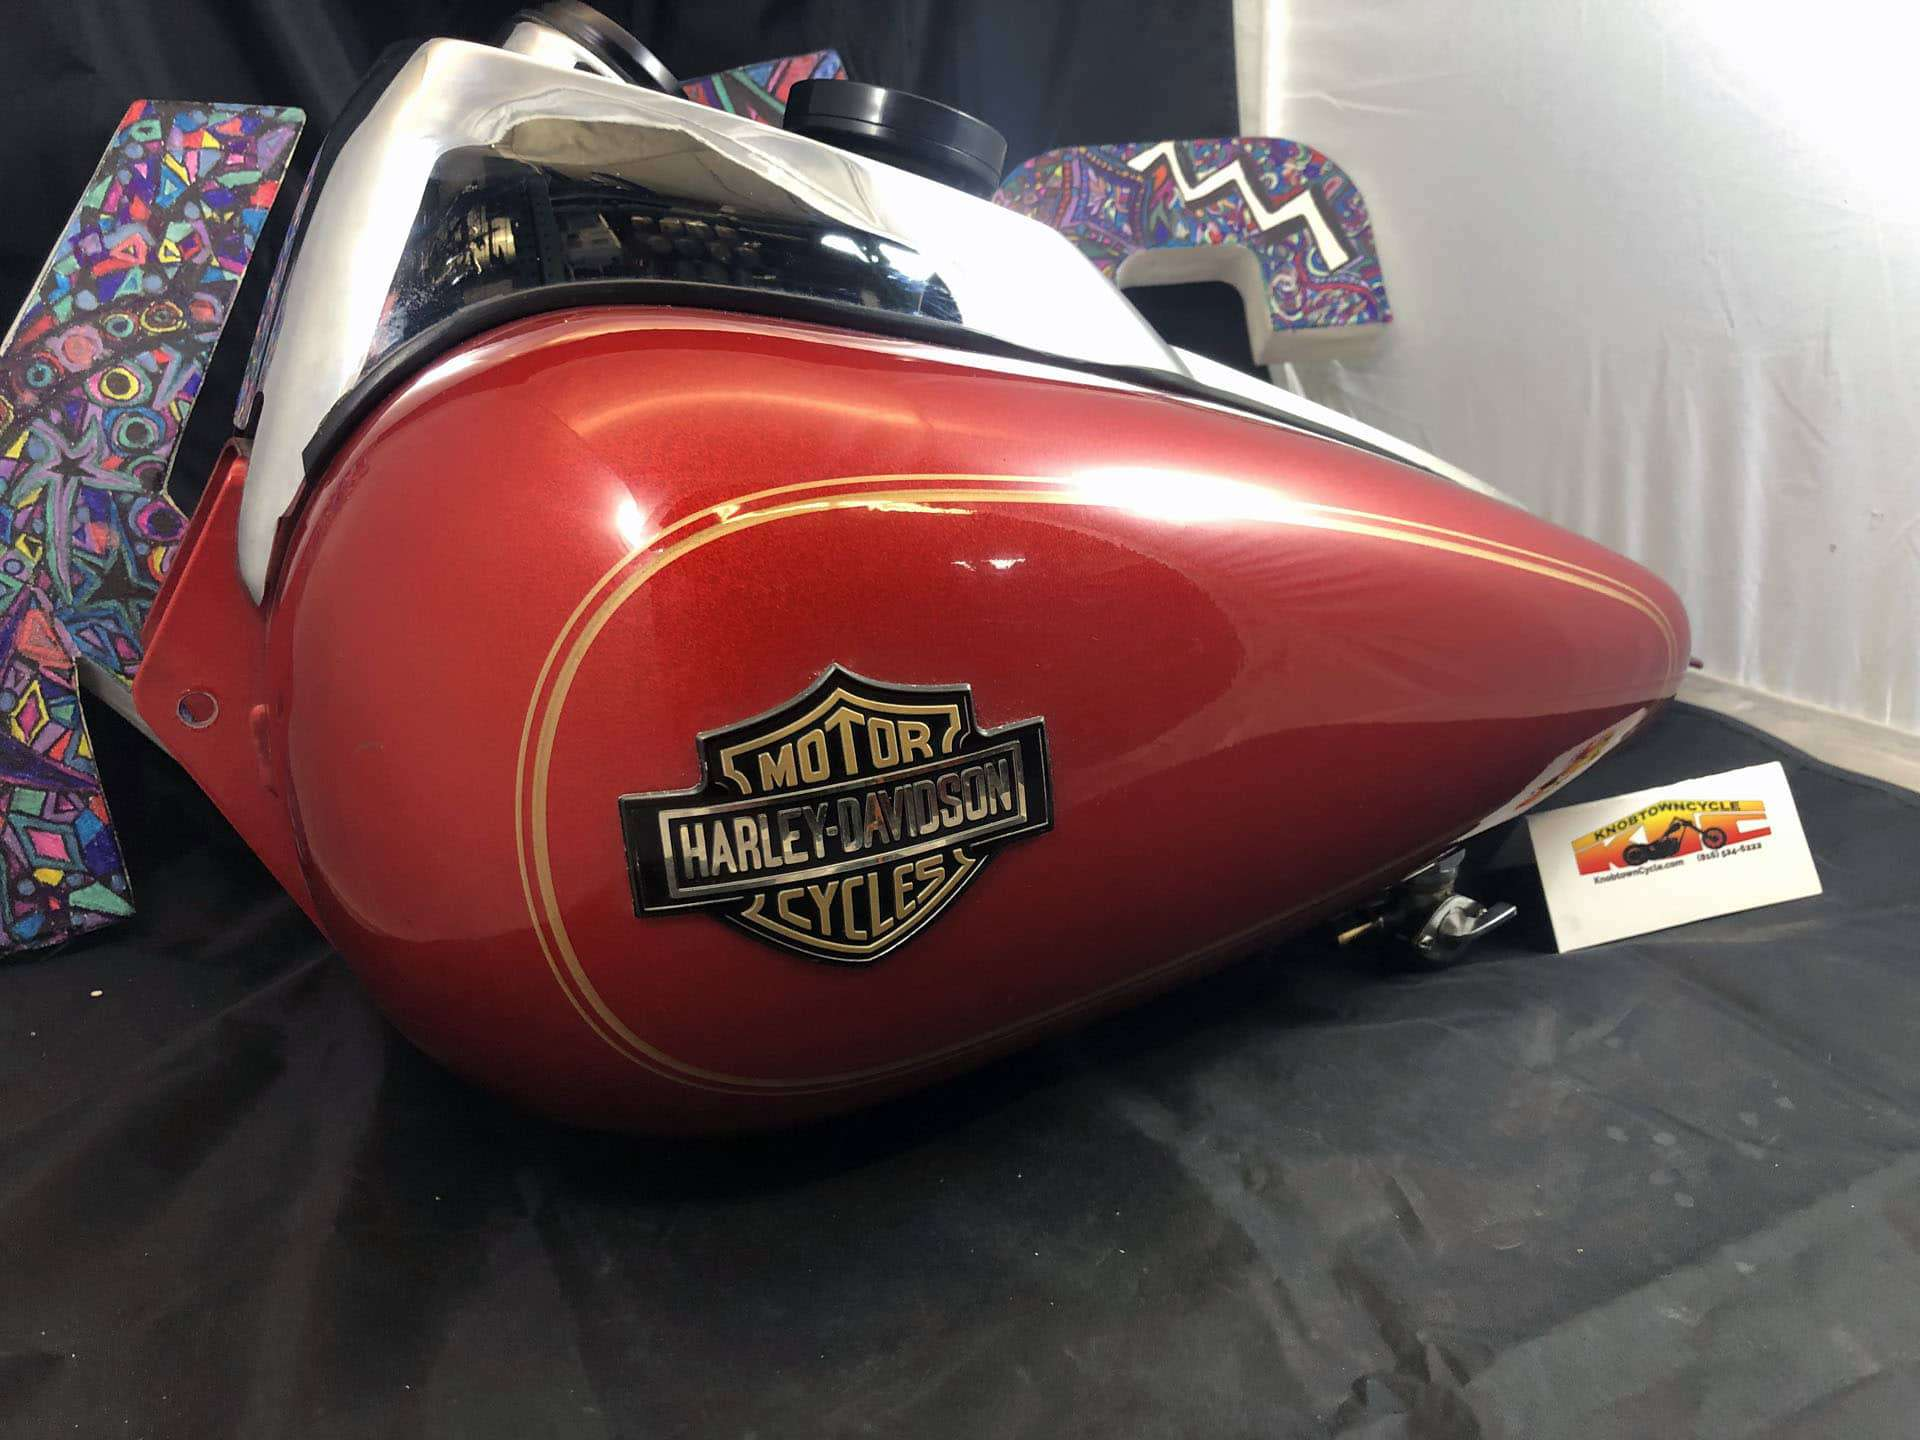 FXR Red with Gold Fuel Tank, FXR Red with Gold Fuel Tank with Gauge for sale., Knobtown Cycle